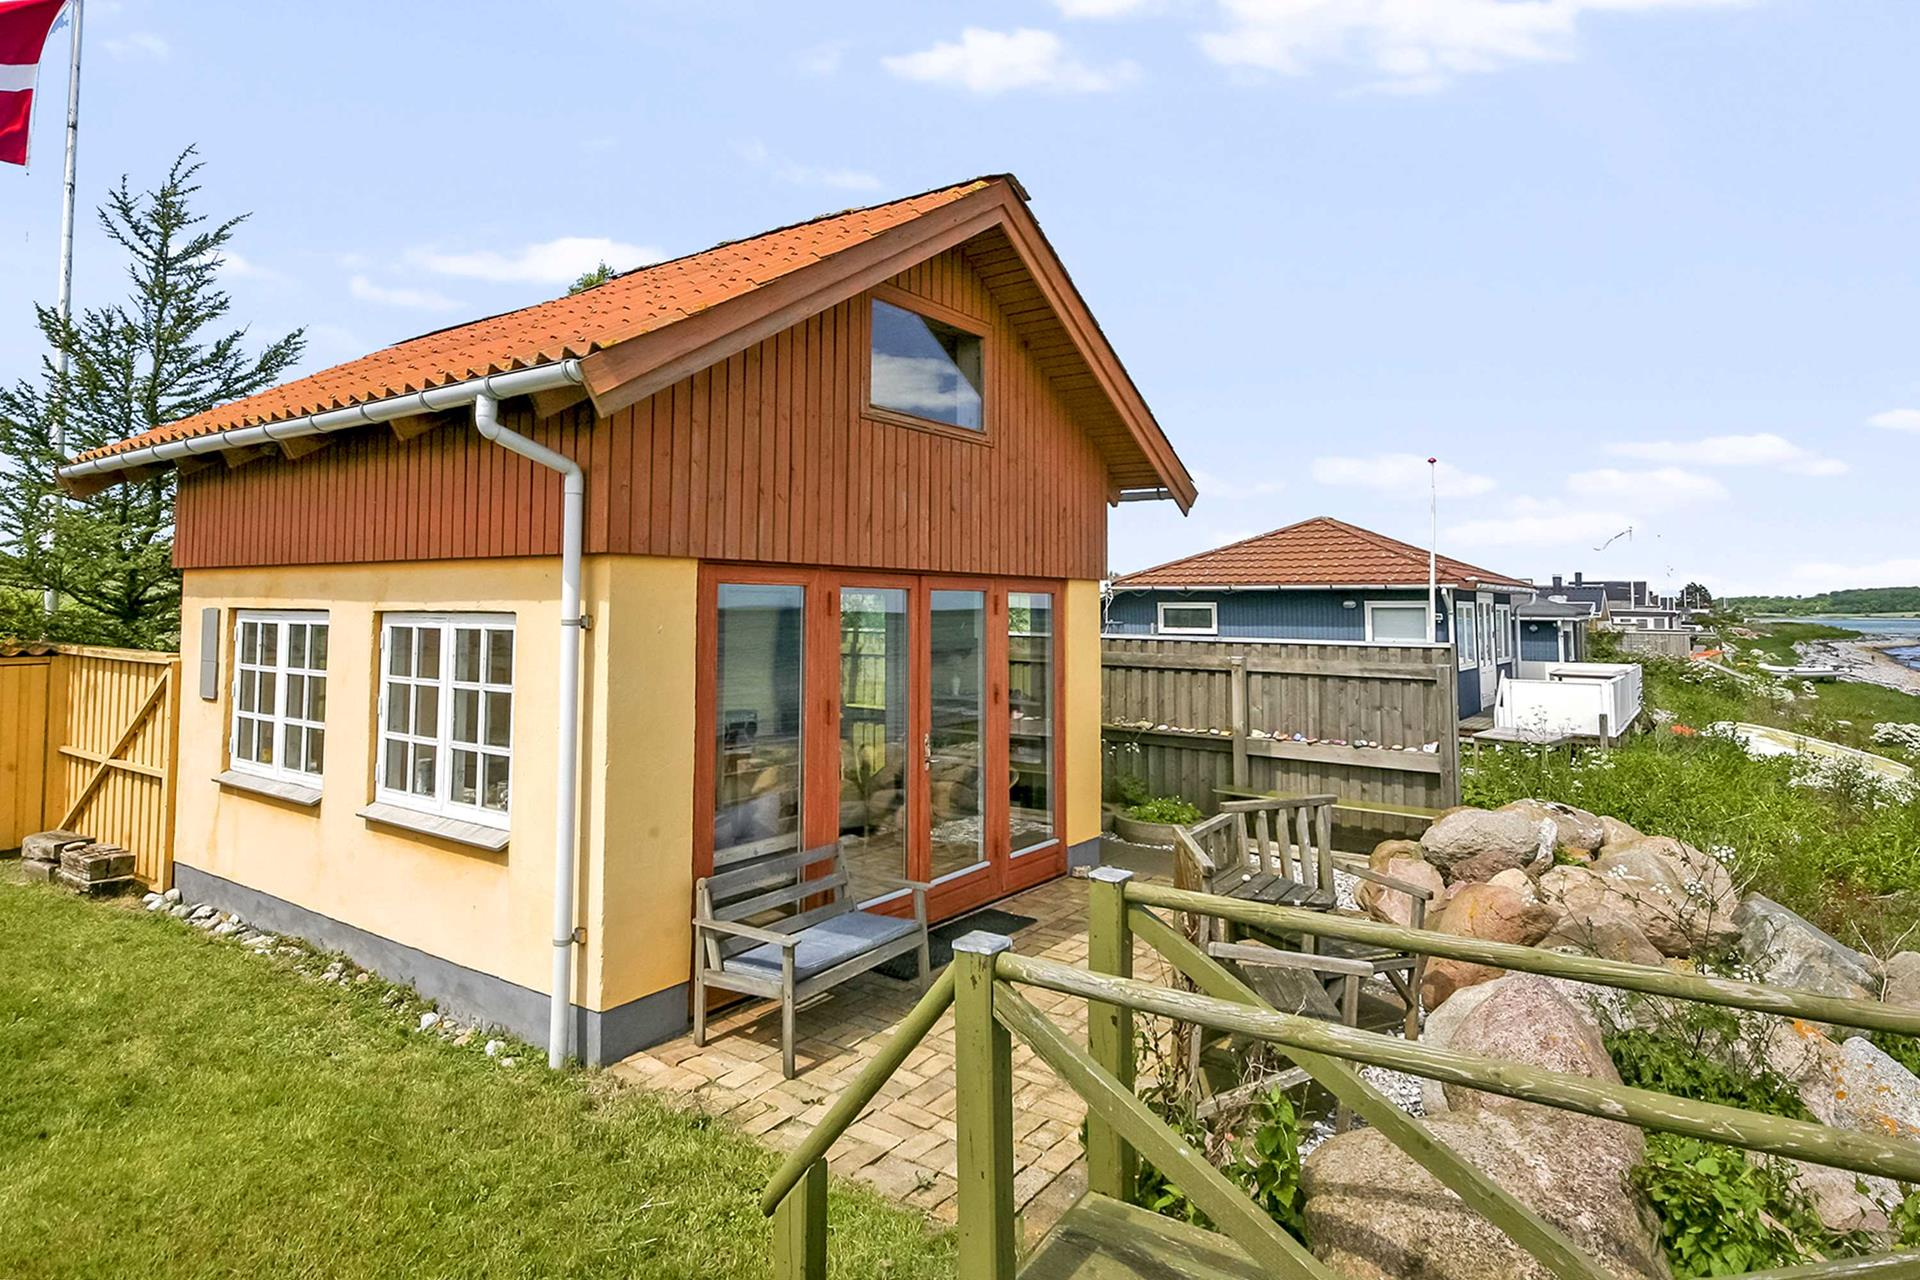 Tiny beachfront cottage in Denmark